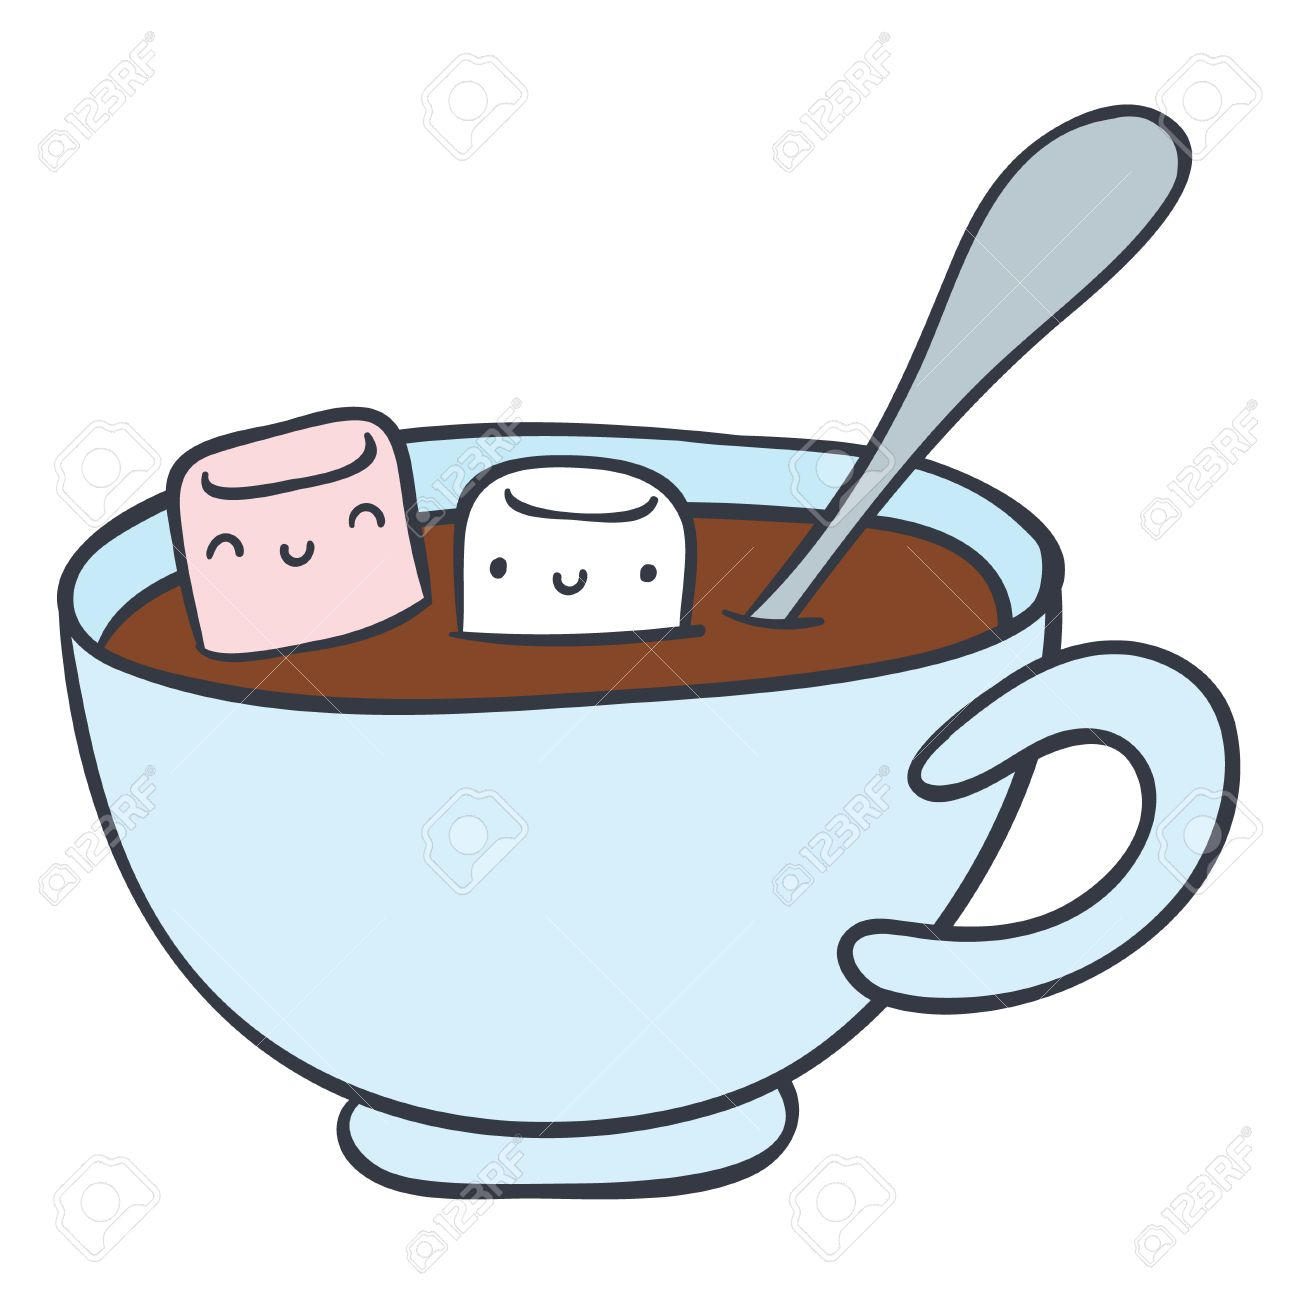 1300x1300 Cartoon Cup Of Hot Chocolate And Smiling Marshmallows